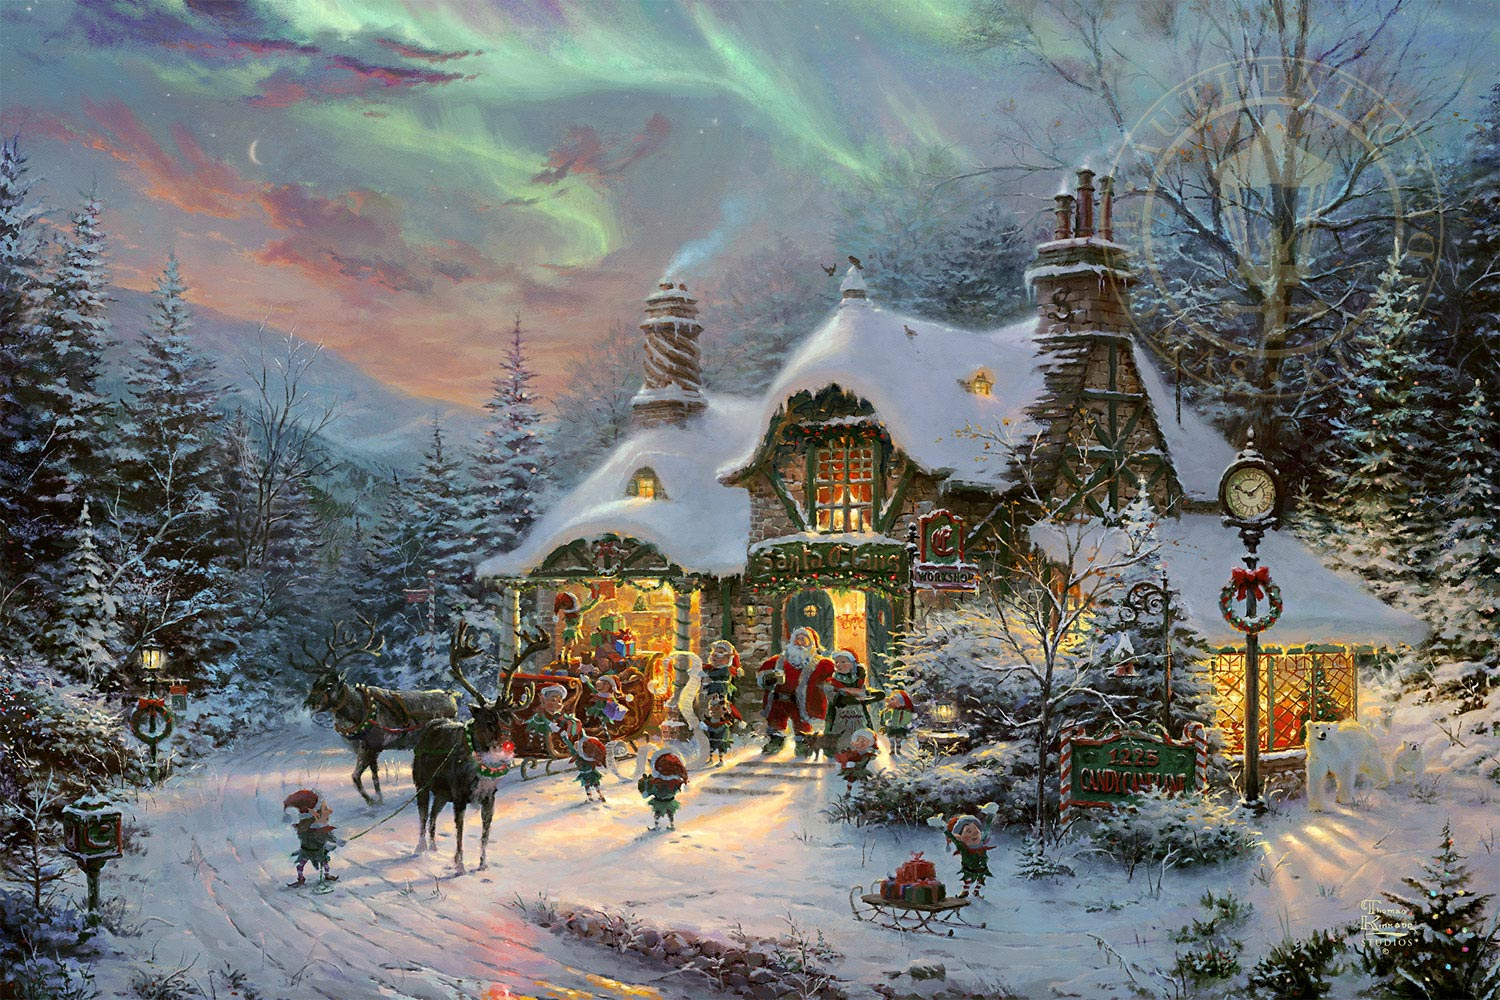 Thomas Kinkade Christmas.Santa S Night Before Christmas By Thomas Kinkade Studios